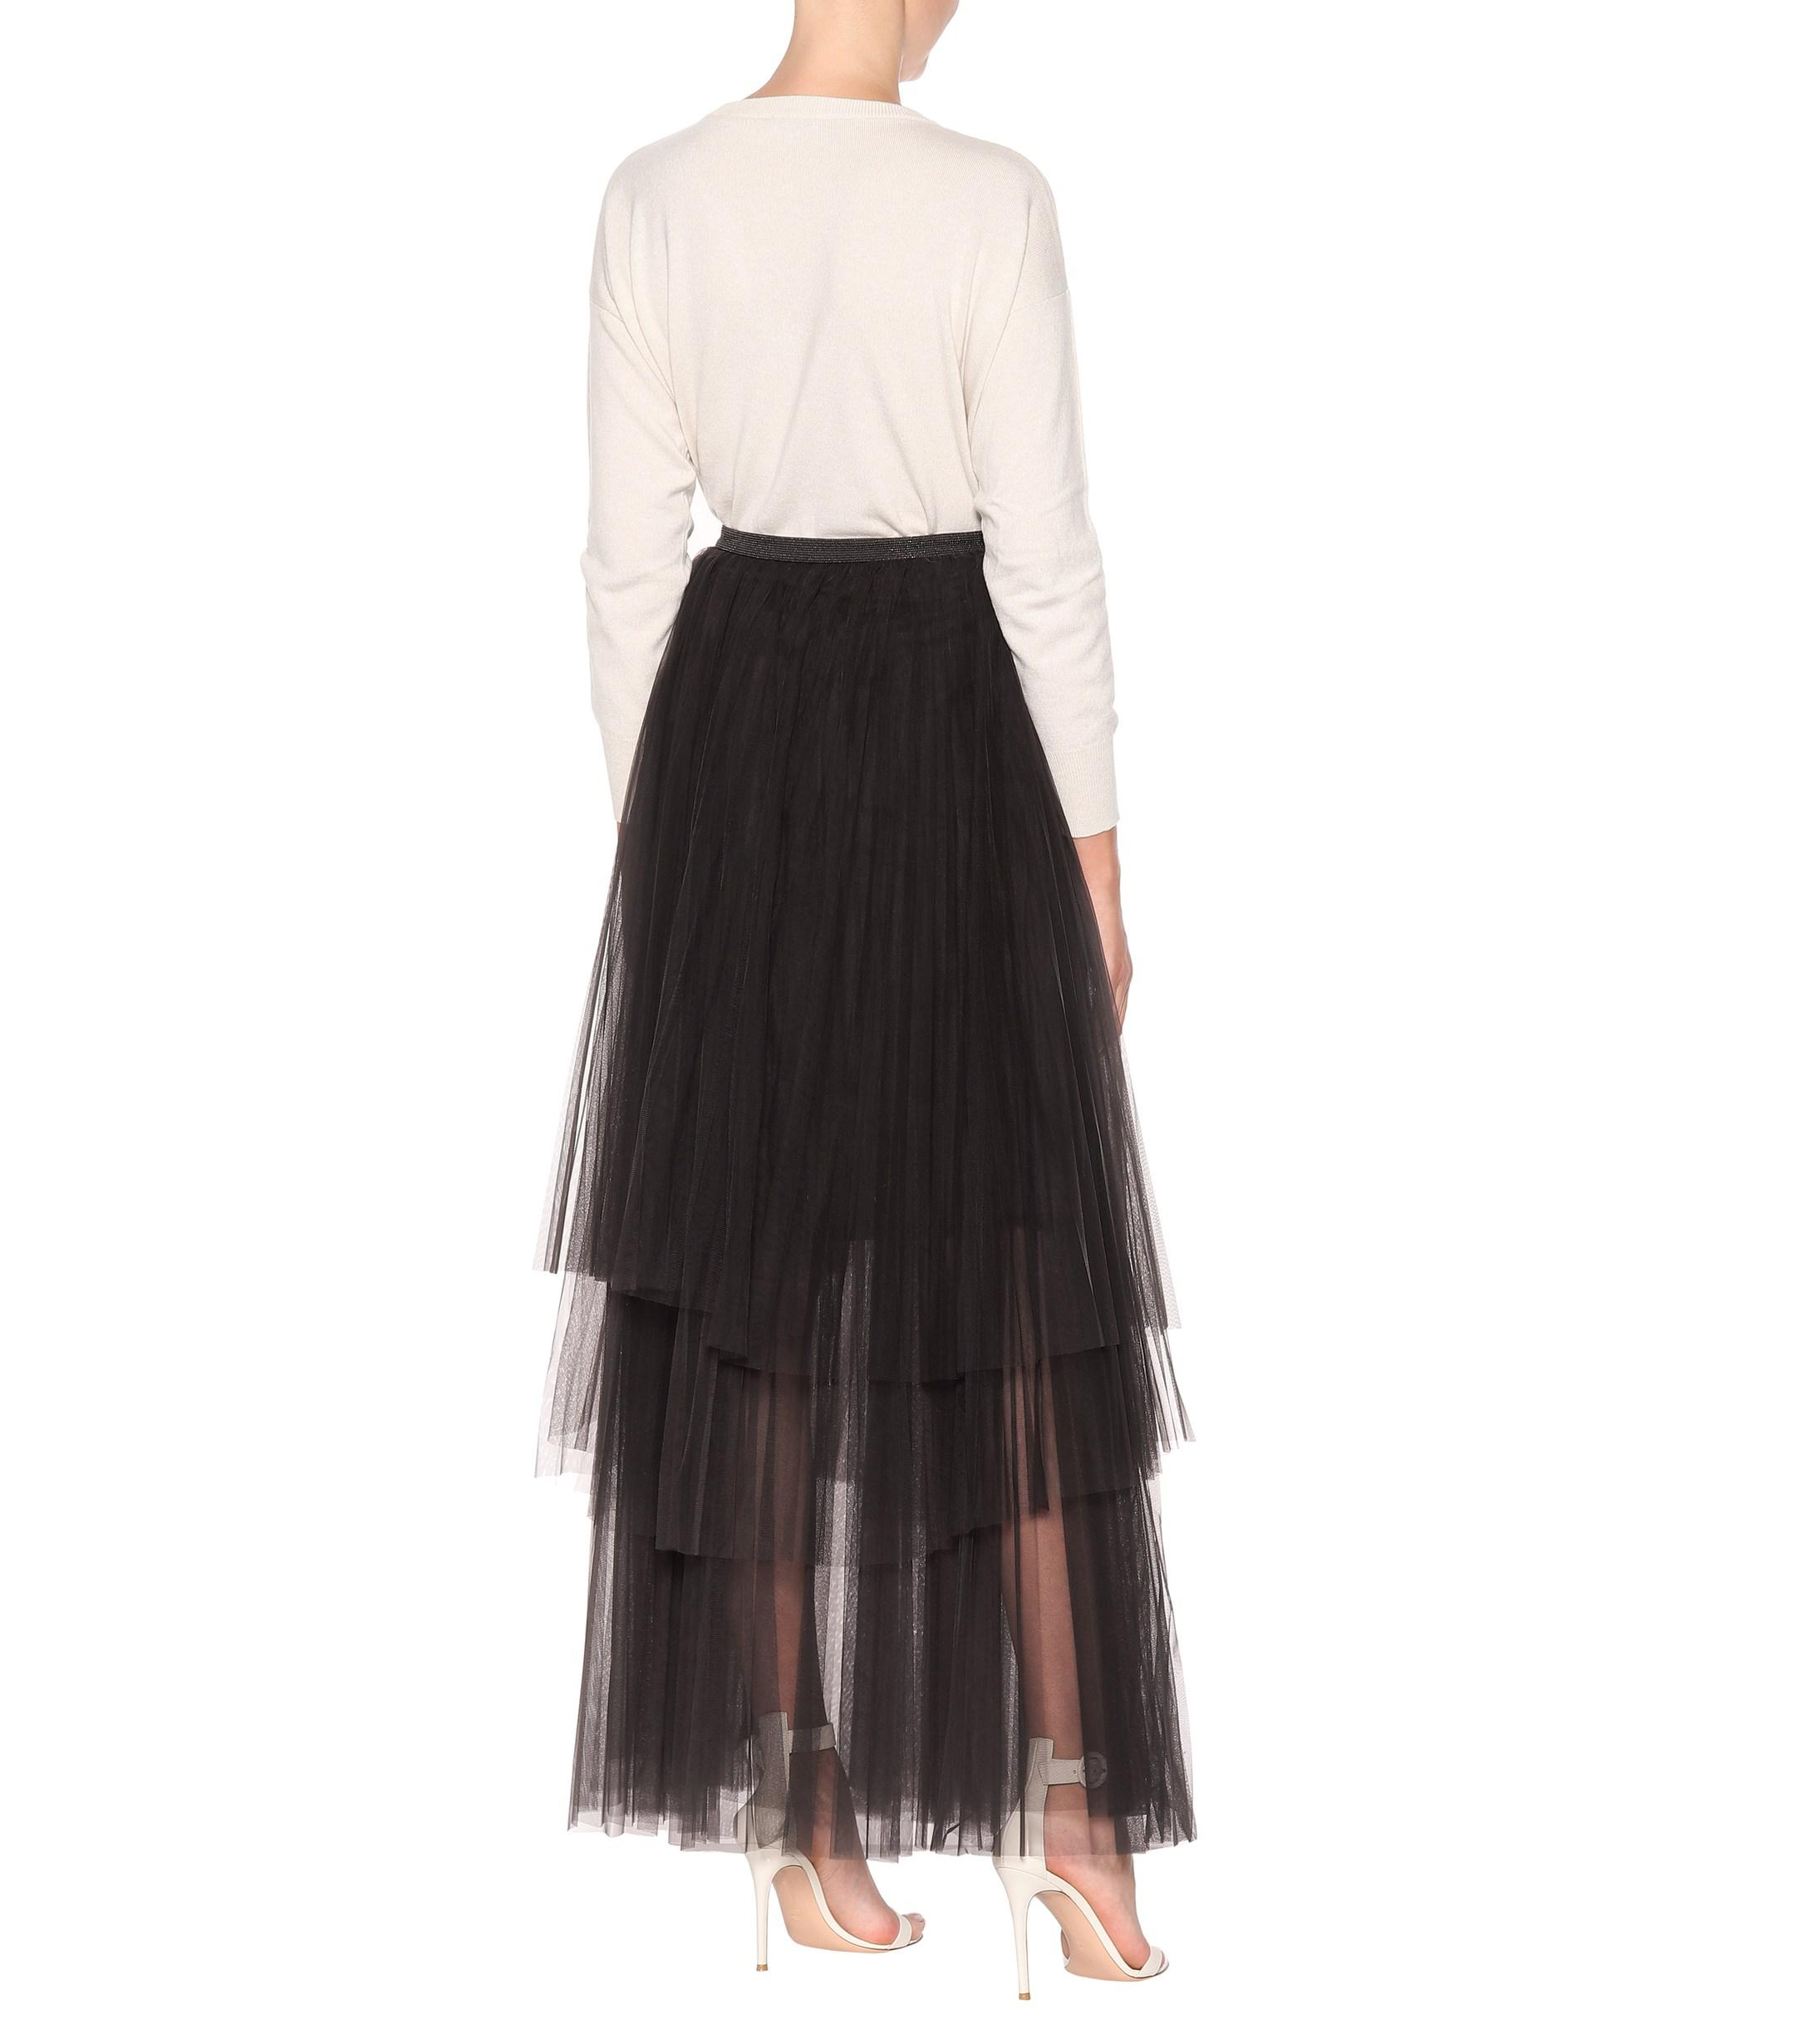 33b29c9cf Gallery. Previously sold at: Mytheresa · Women's Tulle Skirts Women's Long  ...